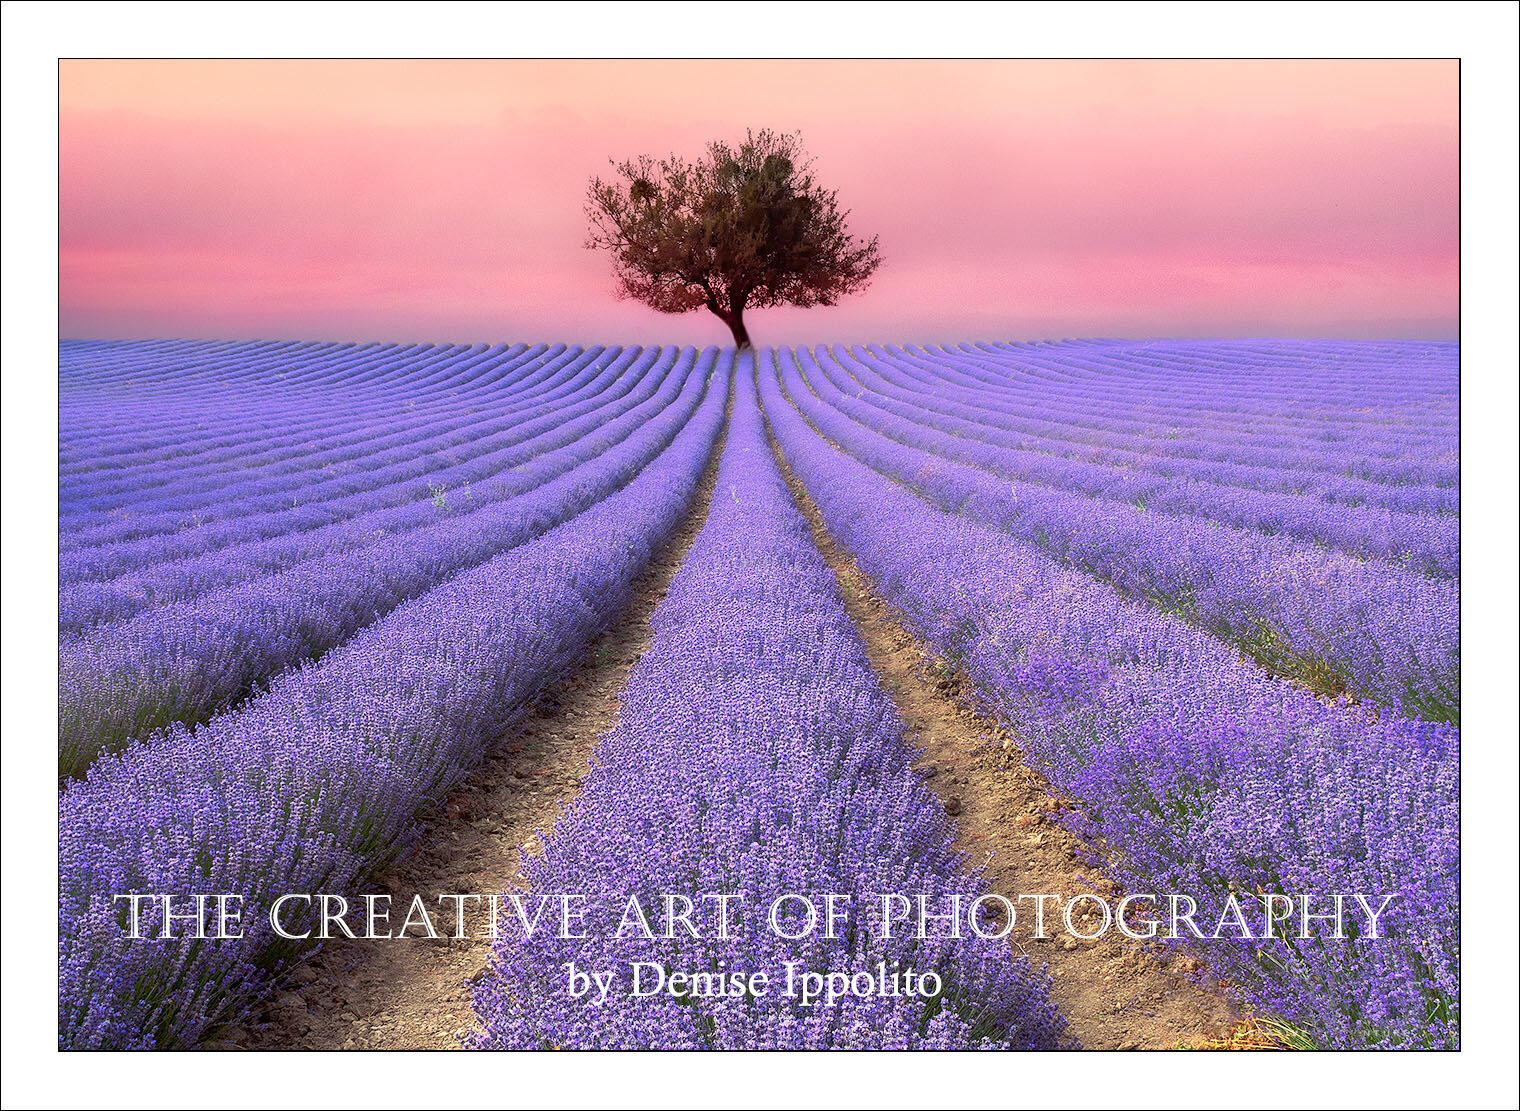 The Creative Art Of Photography - South Jersey Camera Club